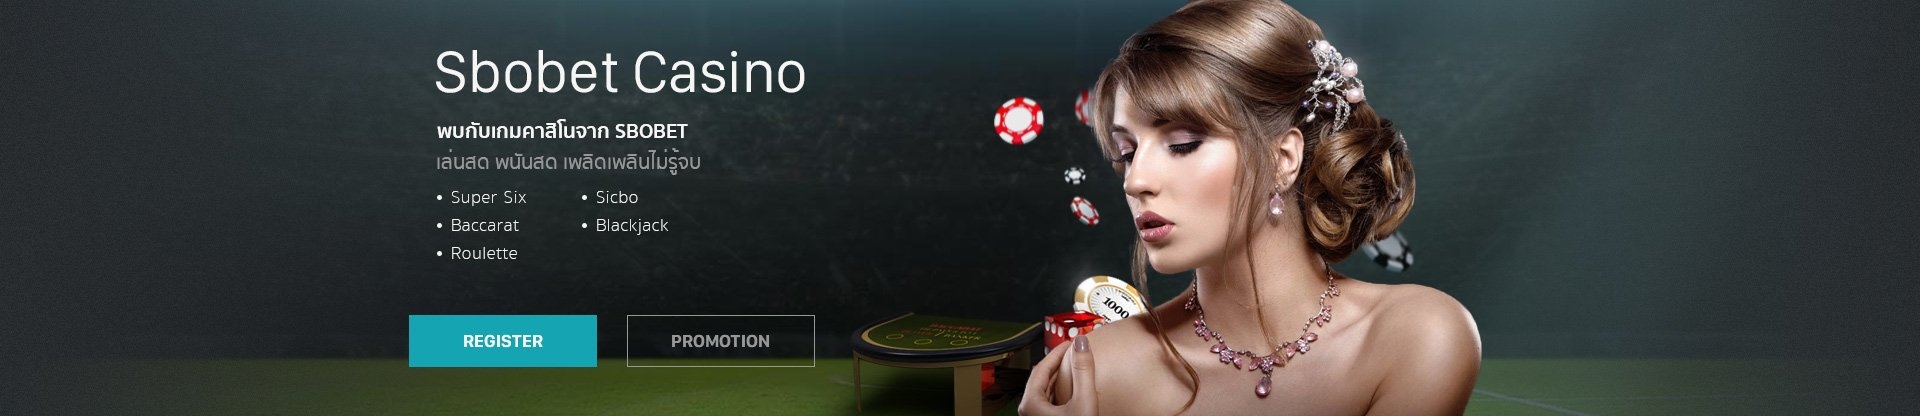 sboth88_4sbobet_casino